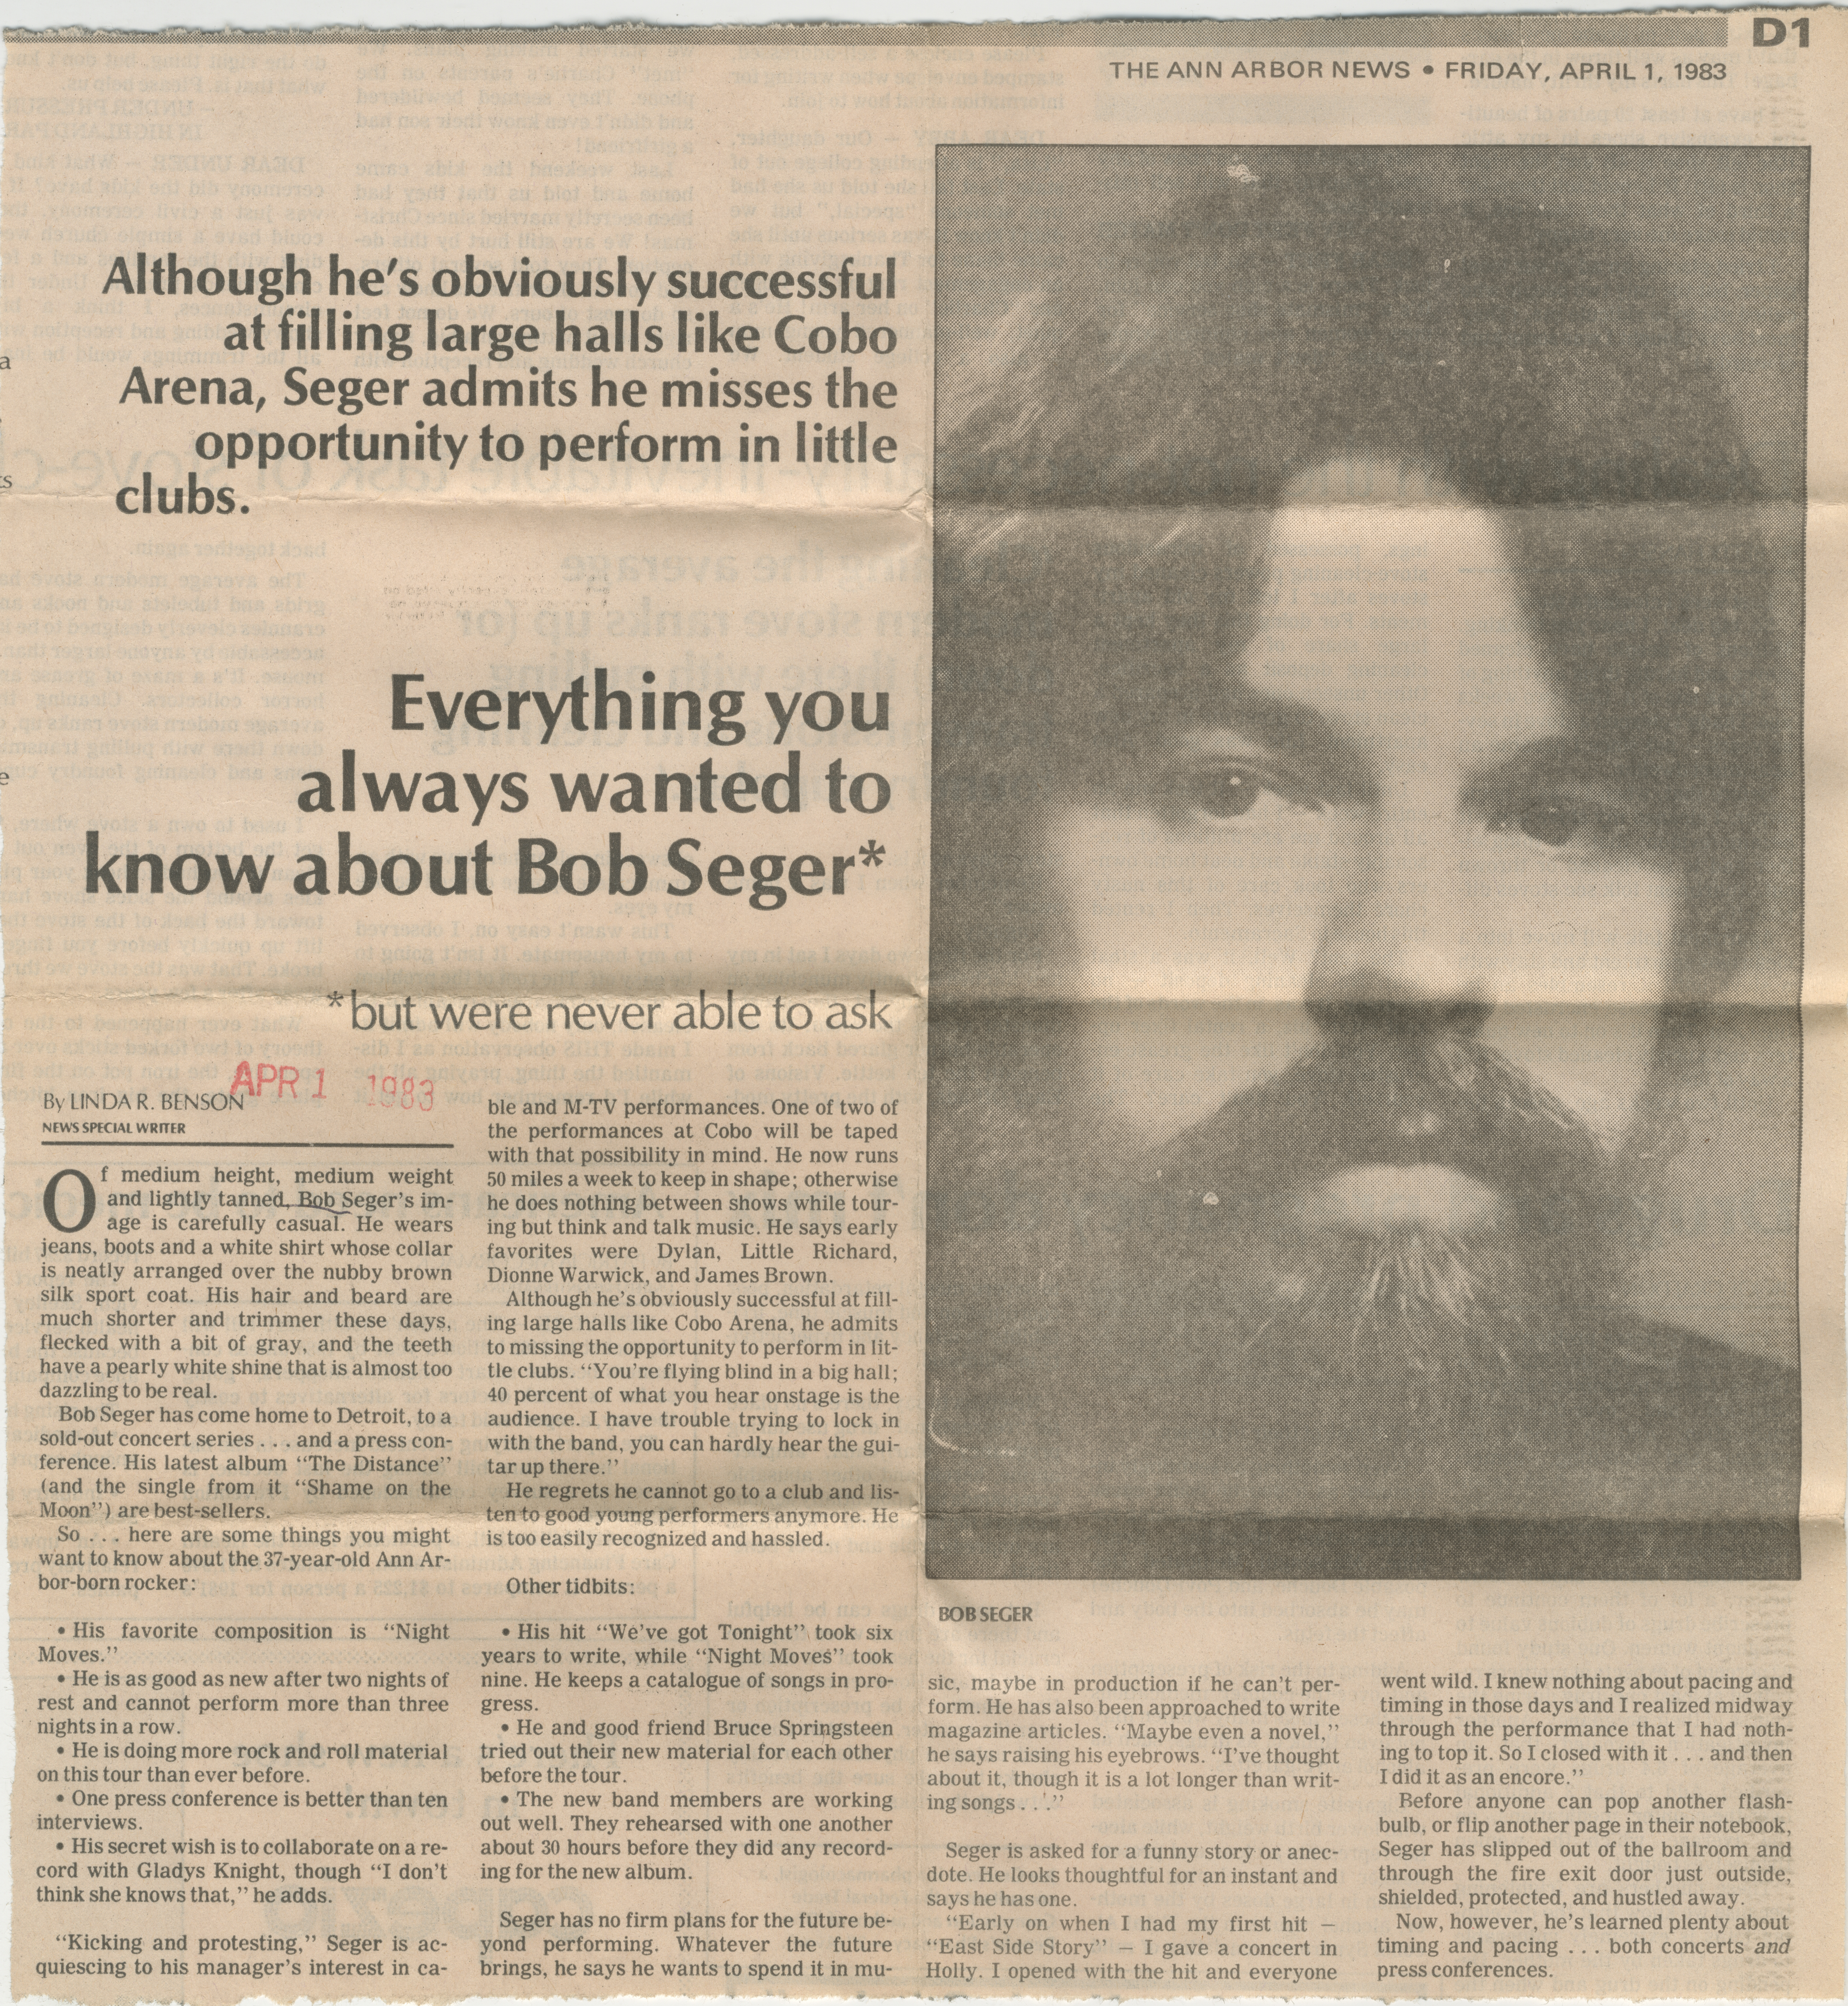 Everything you always wanted to know about Bob Seger image